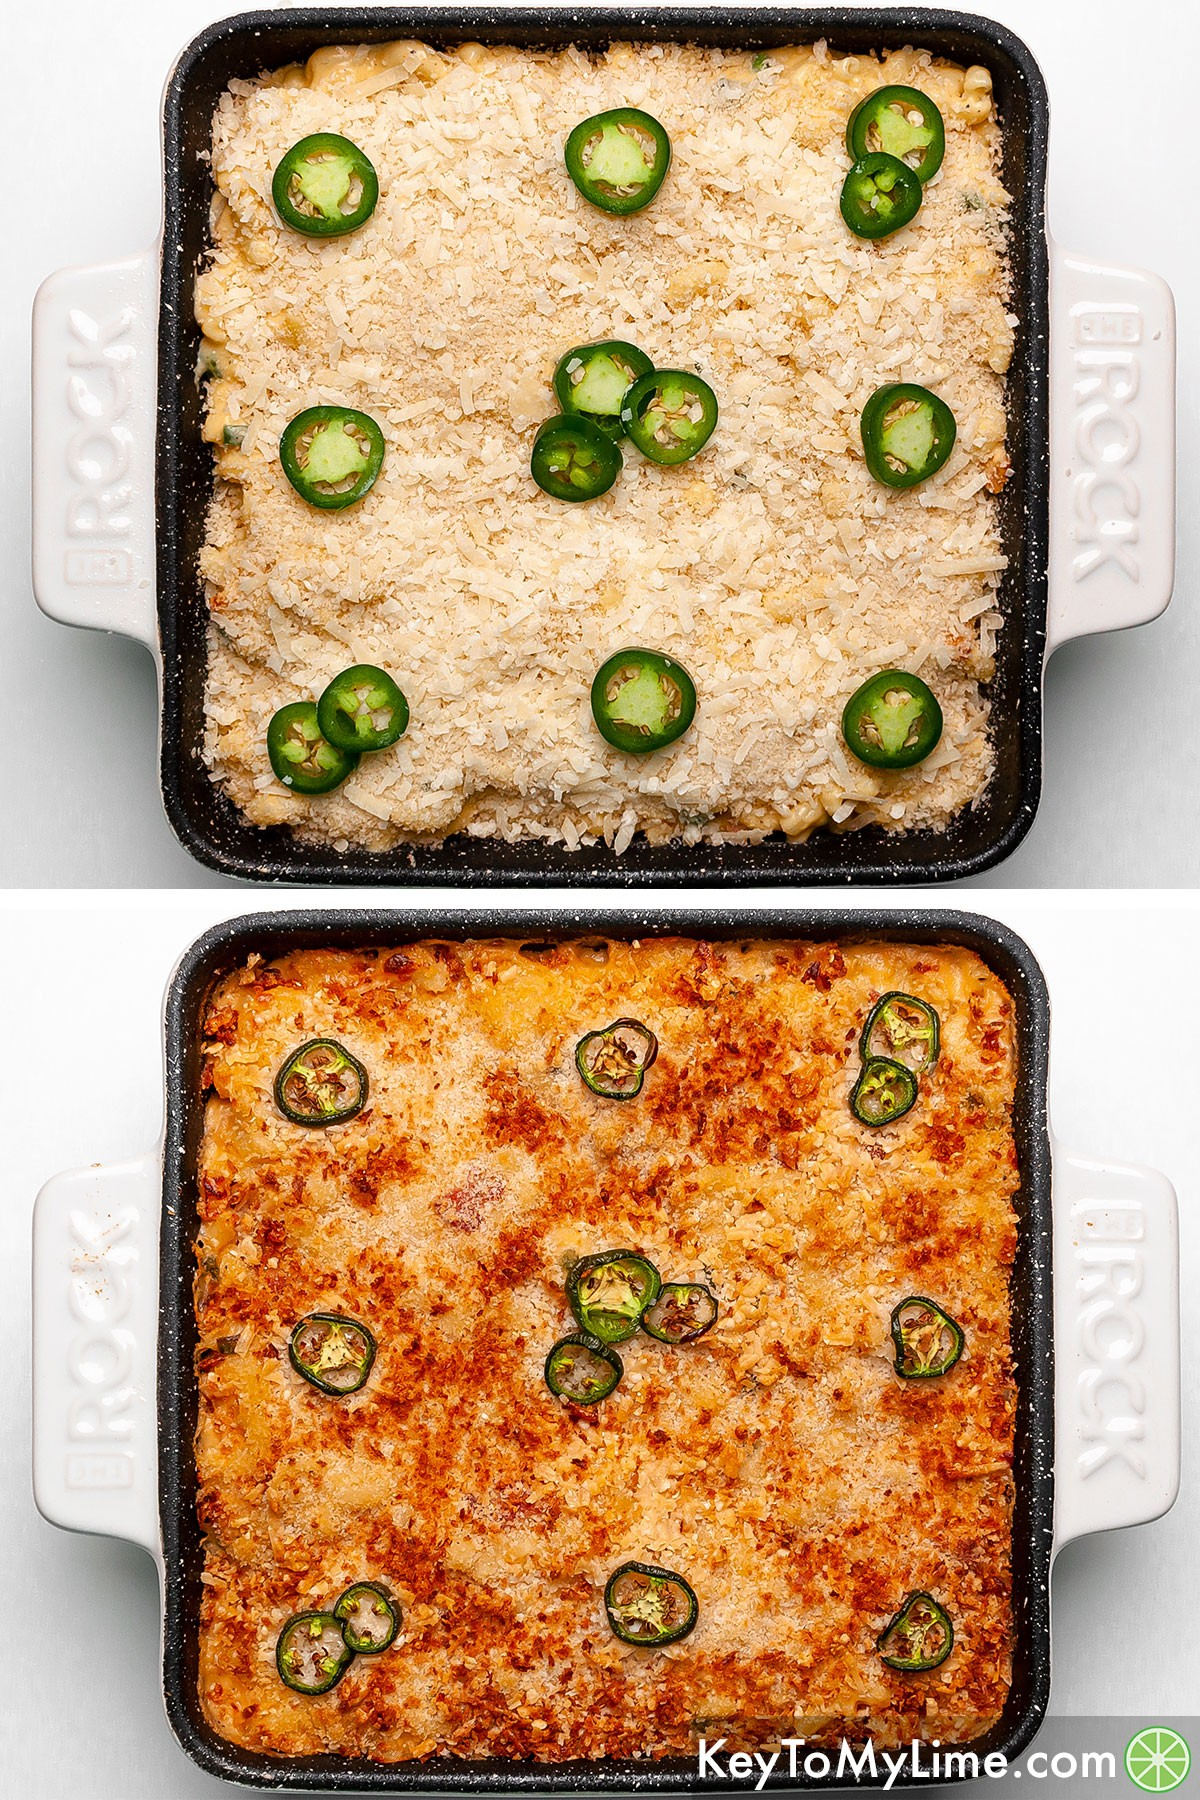 Spicy mac and cheese before and after baking.